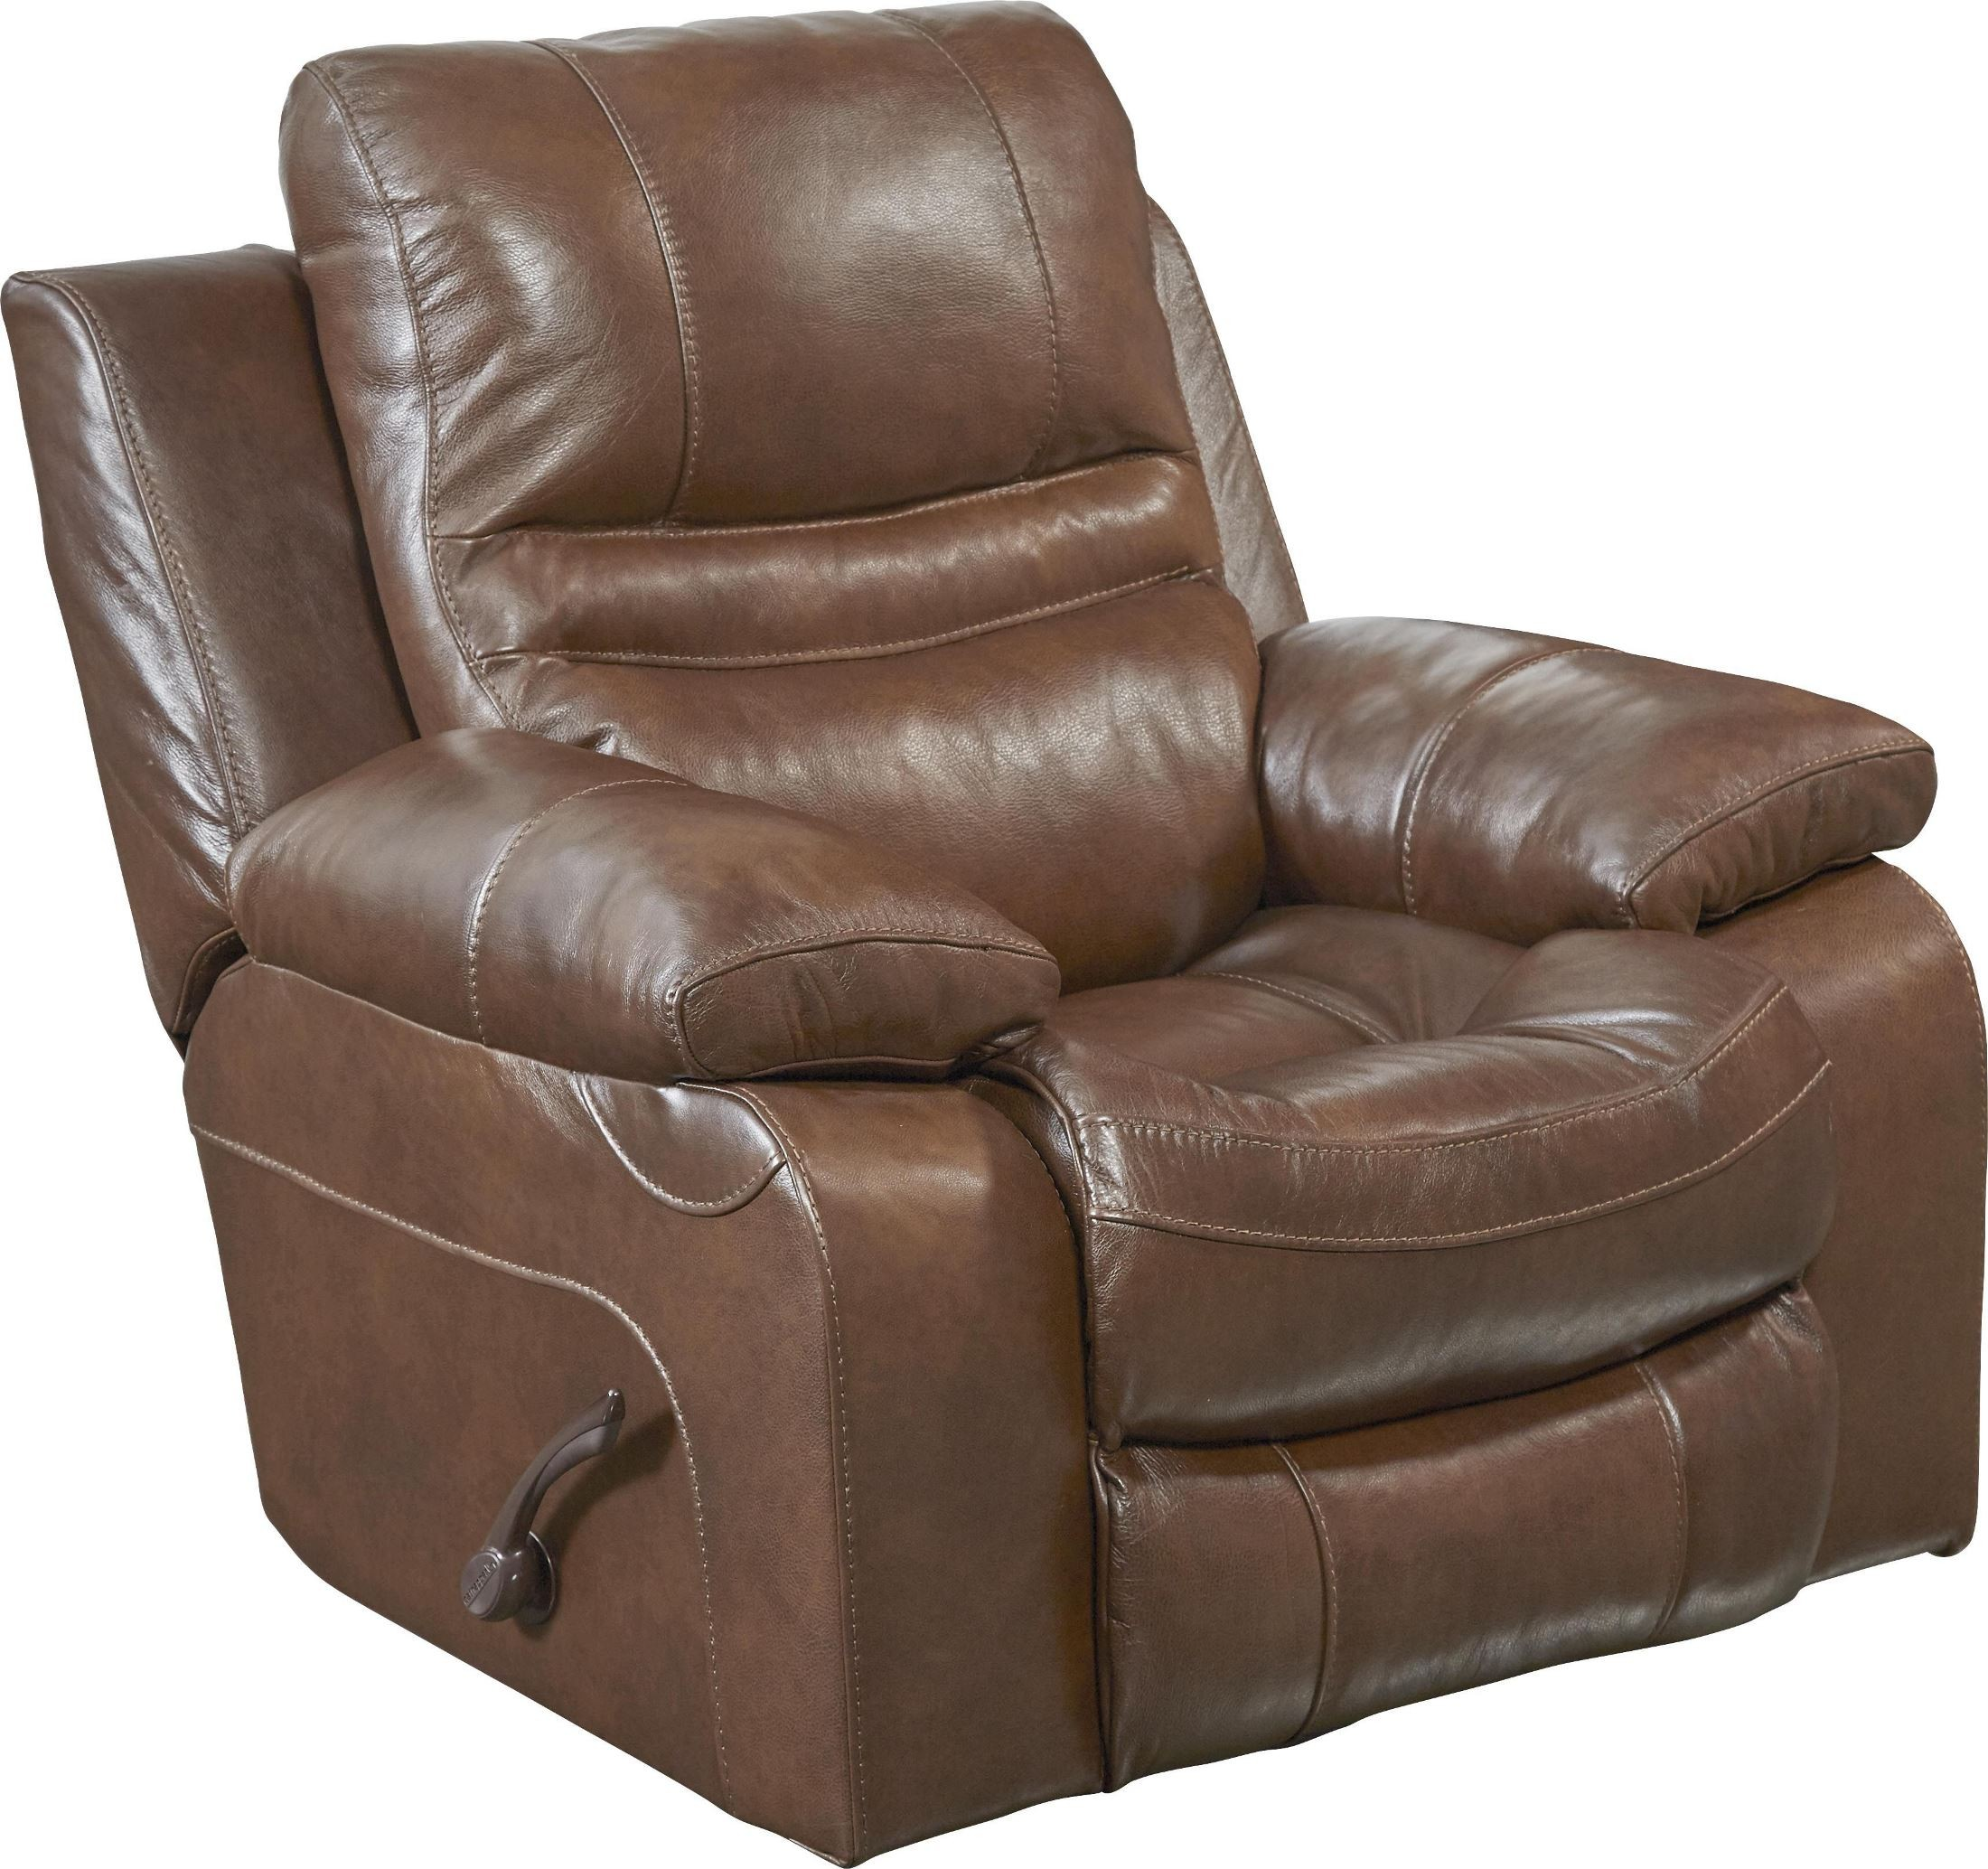 Patton chesnut power lay flat recliner from catnapper for Catnapper cloud nine chaise recliner